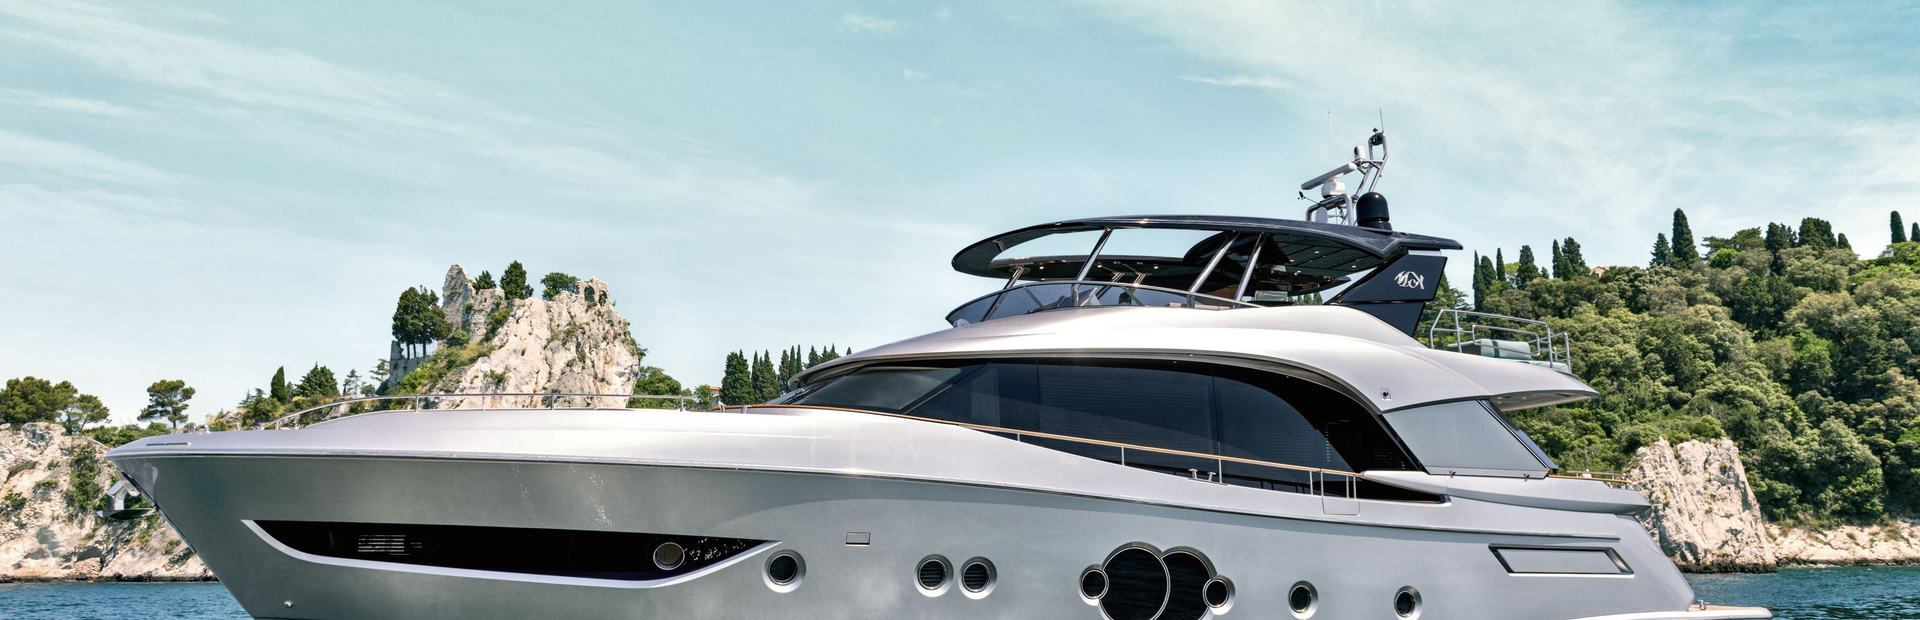 MCY 76 Yacht Charter